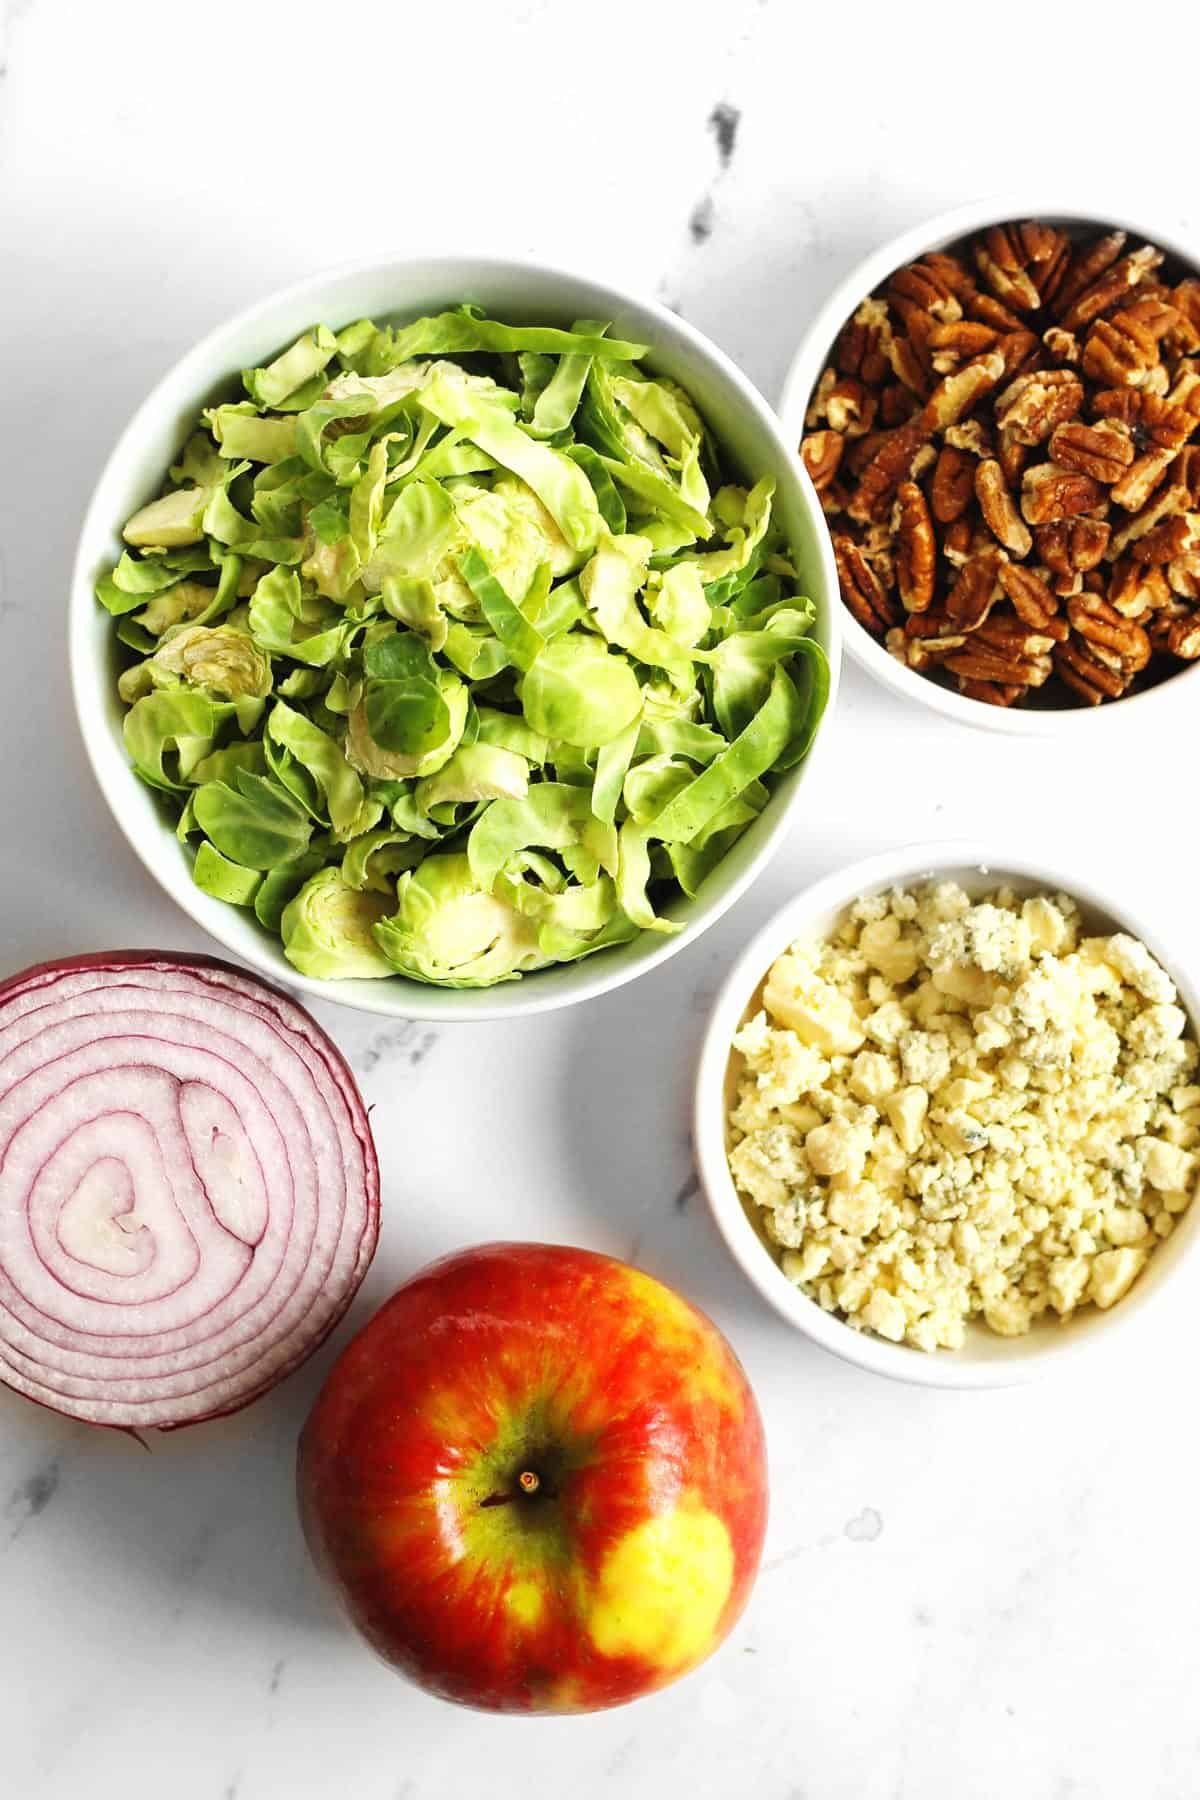 Brussels sprout and apple salad ingredients